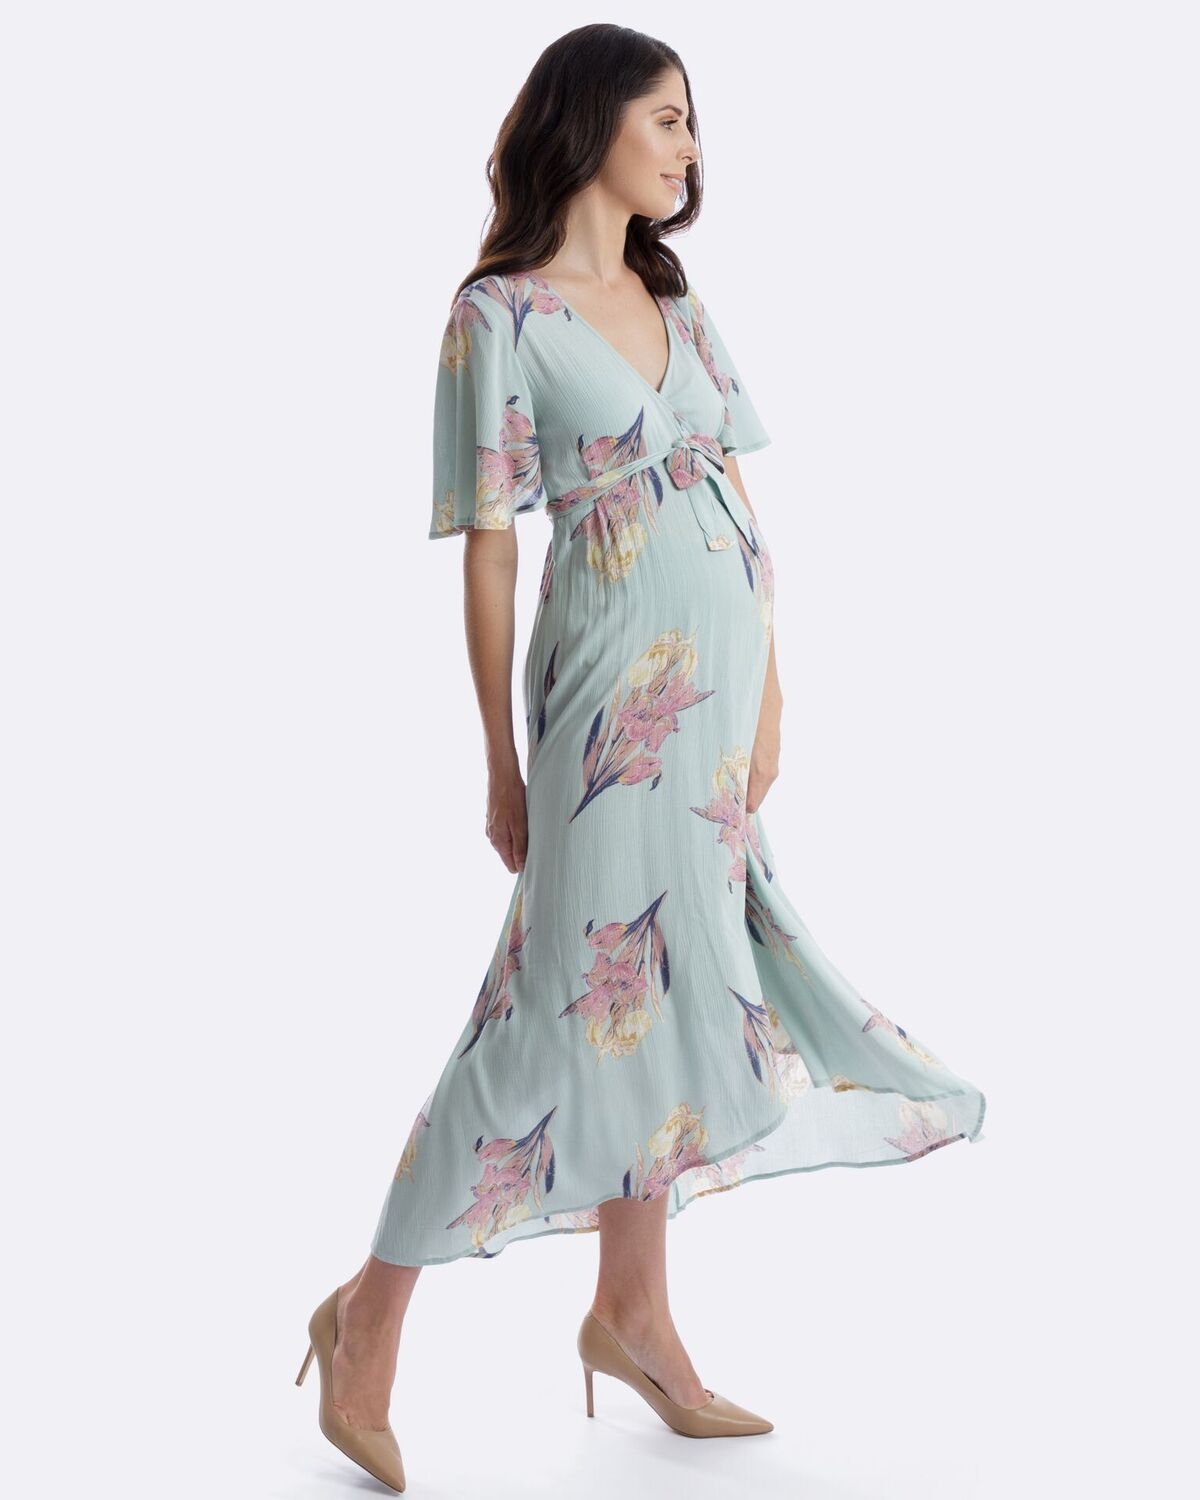 Swish In Our Harlow Maternity Wrap Dress In Mint Dresses Maternity Wrap Dress Wrap Dress [ 1500 x 1200 Pixel ]